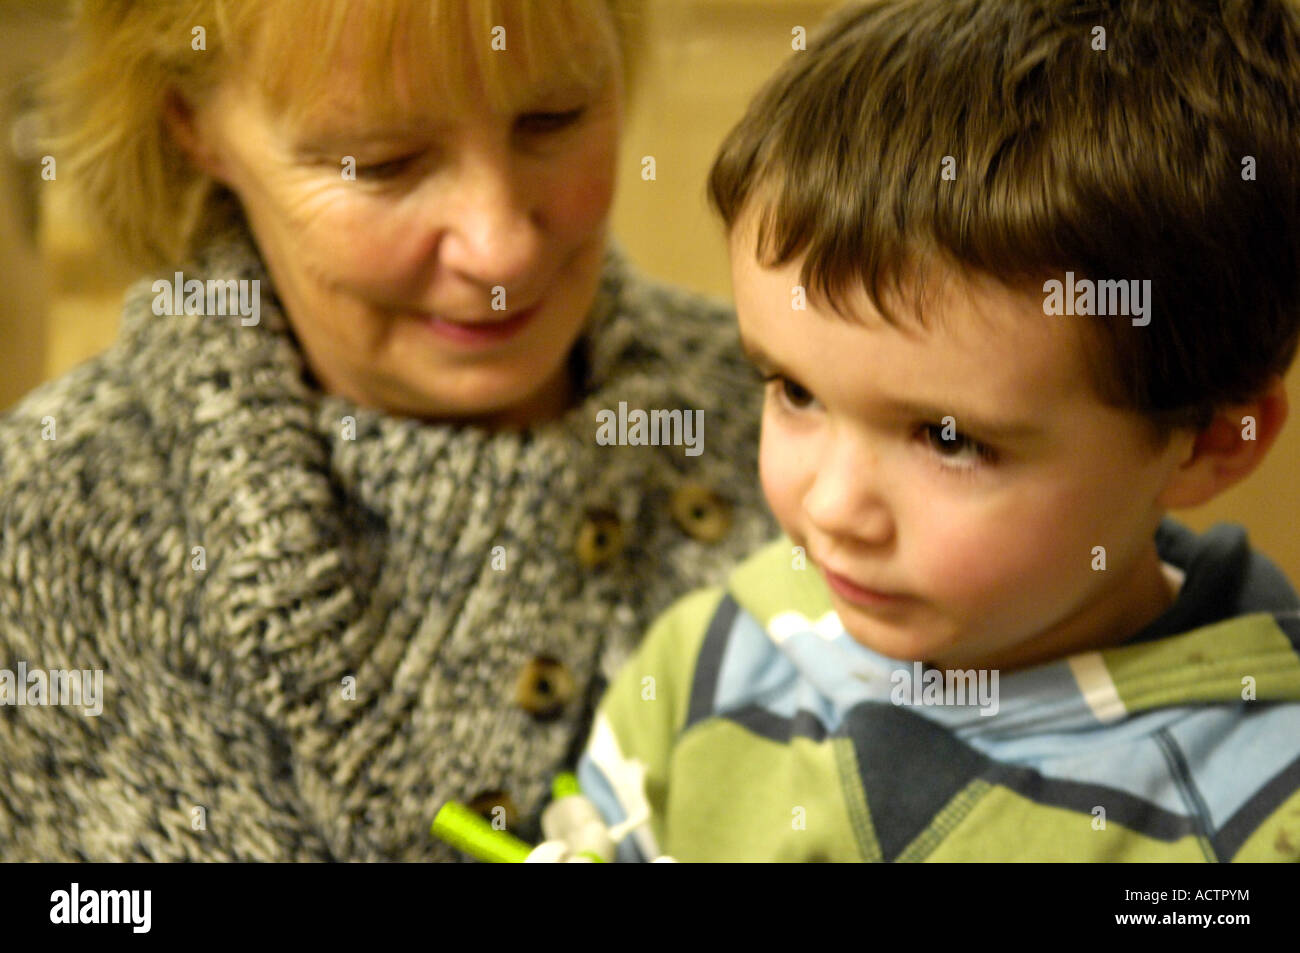 granny boy Stock Photo - boy four grandmother granny gran grandma together happy  loving infant young male lad kid child horizontal colour color portra